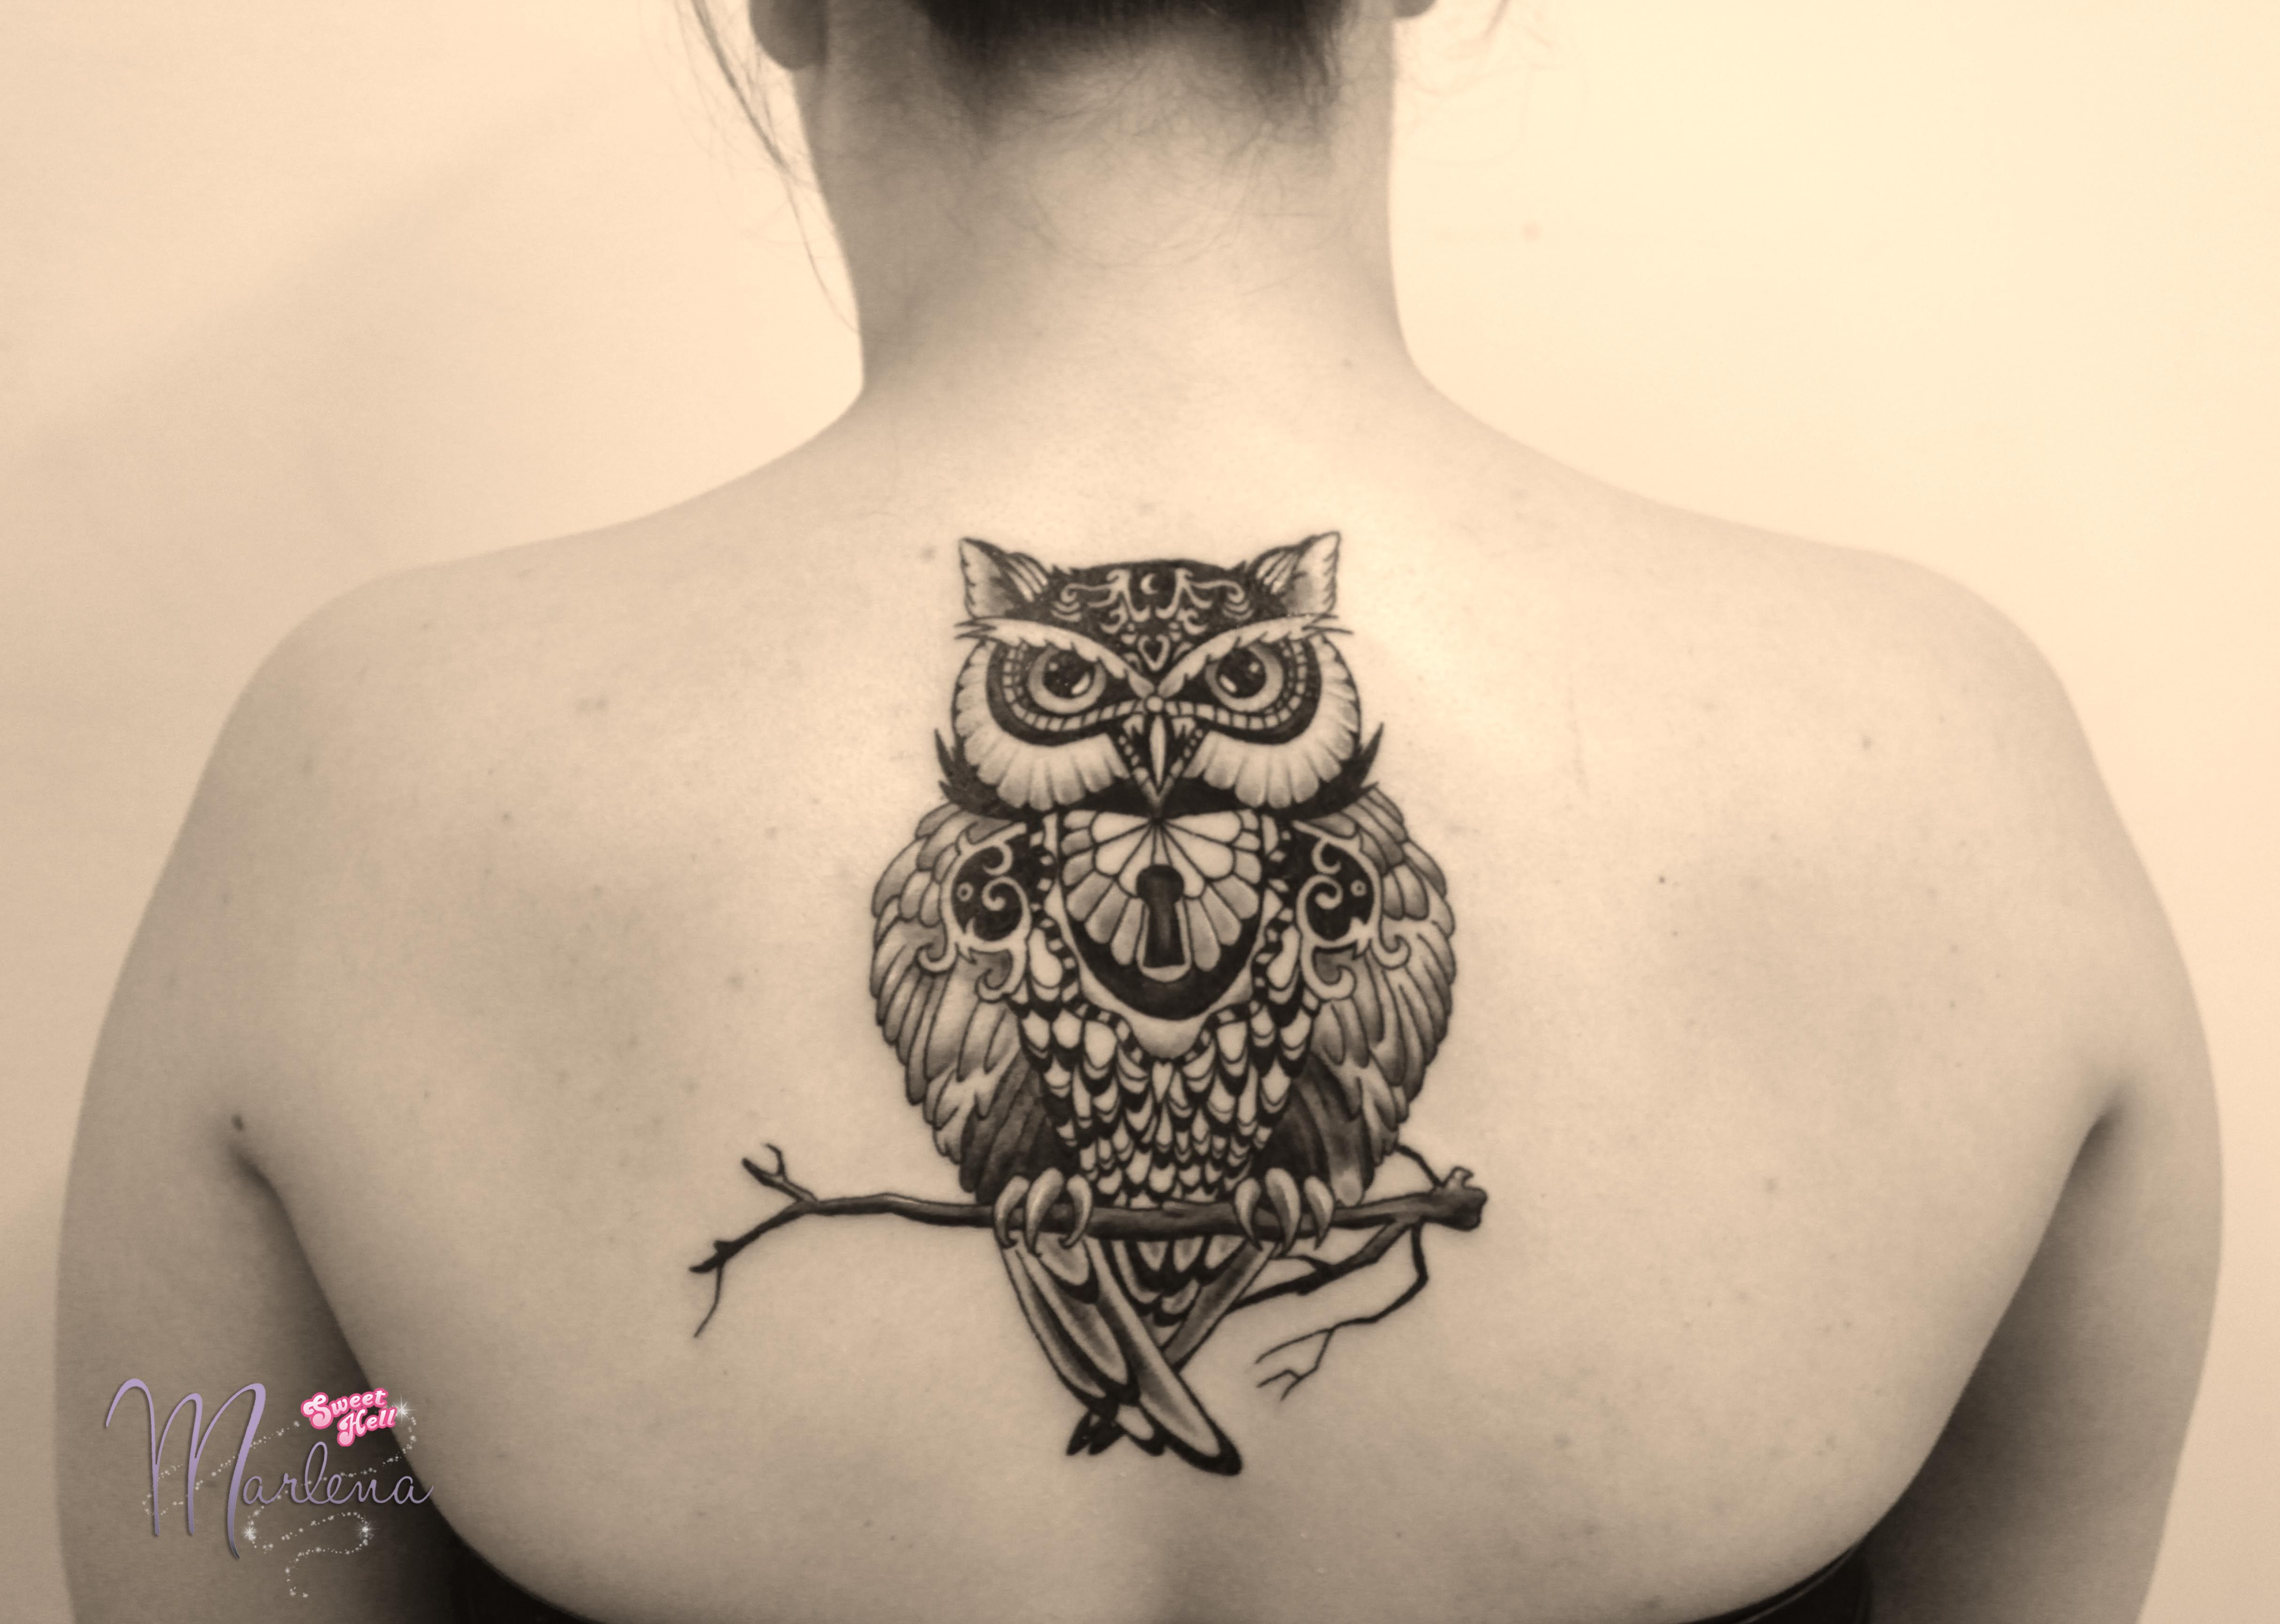 Owl Tattoo On A Back Between Shoulder Blades Black Ideas And Designs